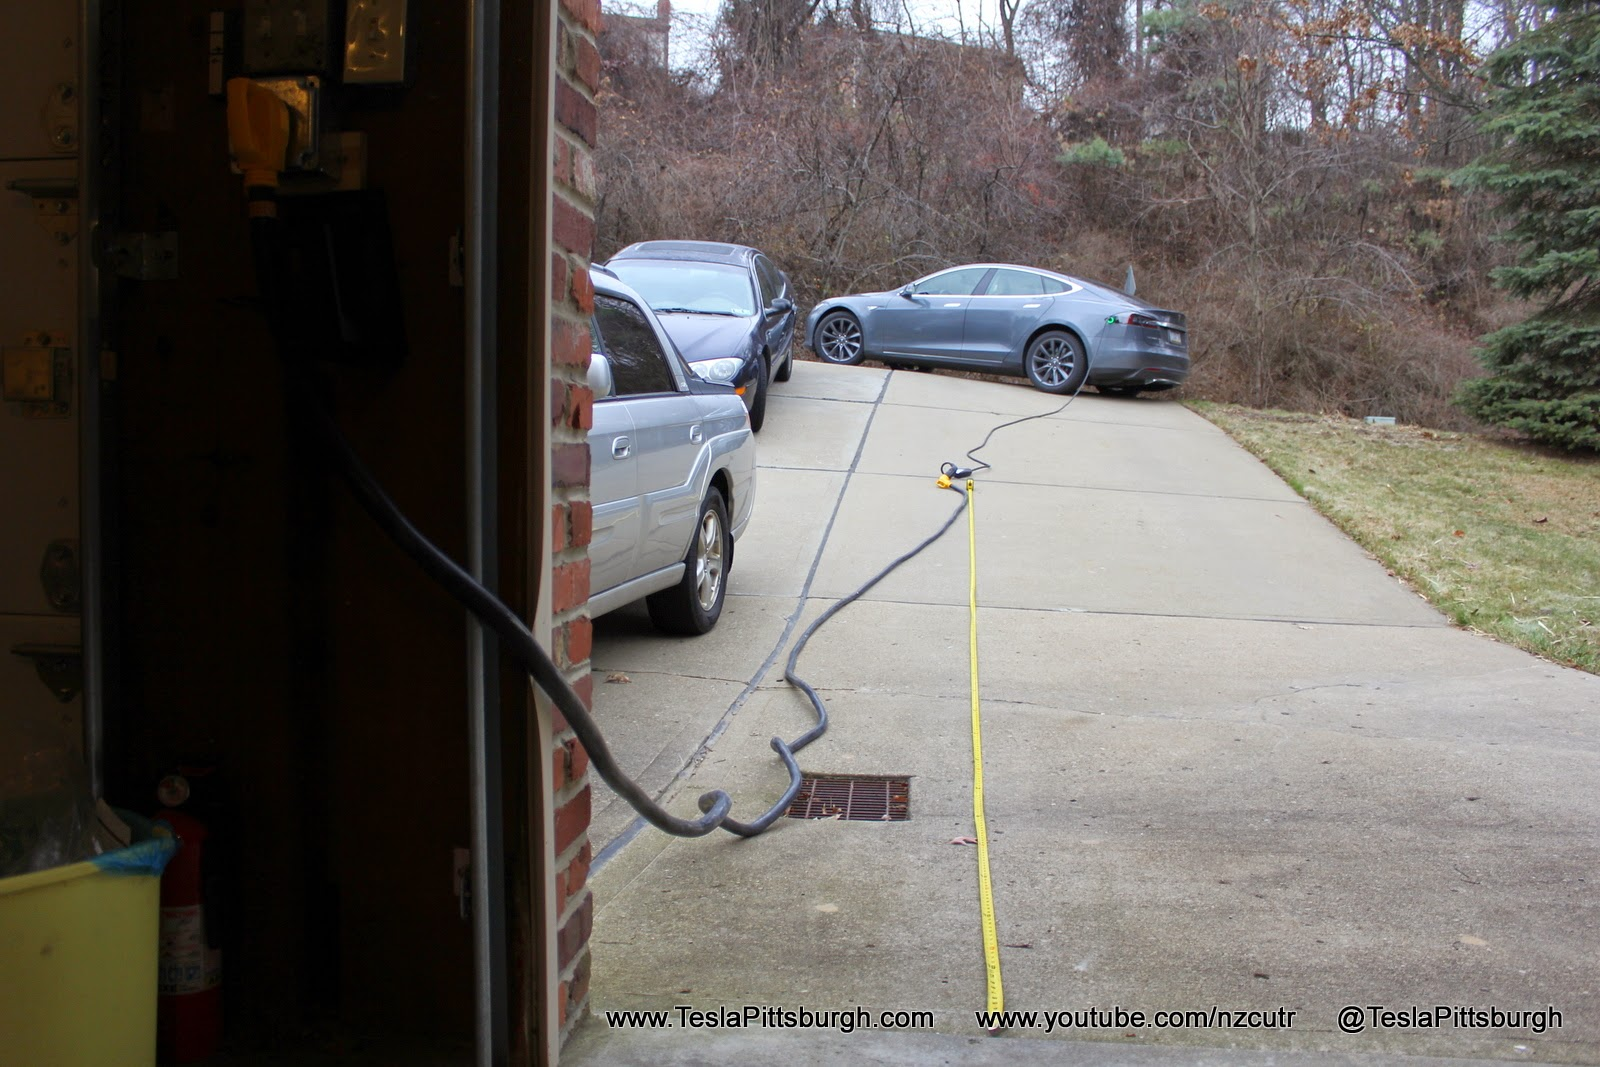 Tesla Umc Extension Cord Via Camco 50 Amp 30 Powergrip